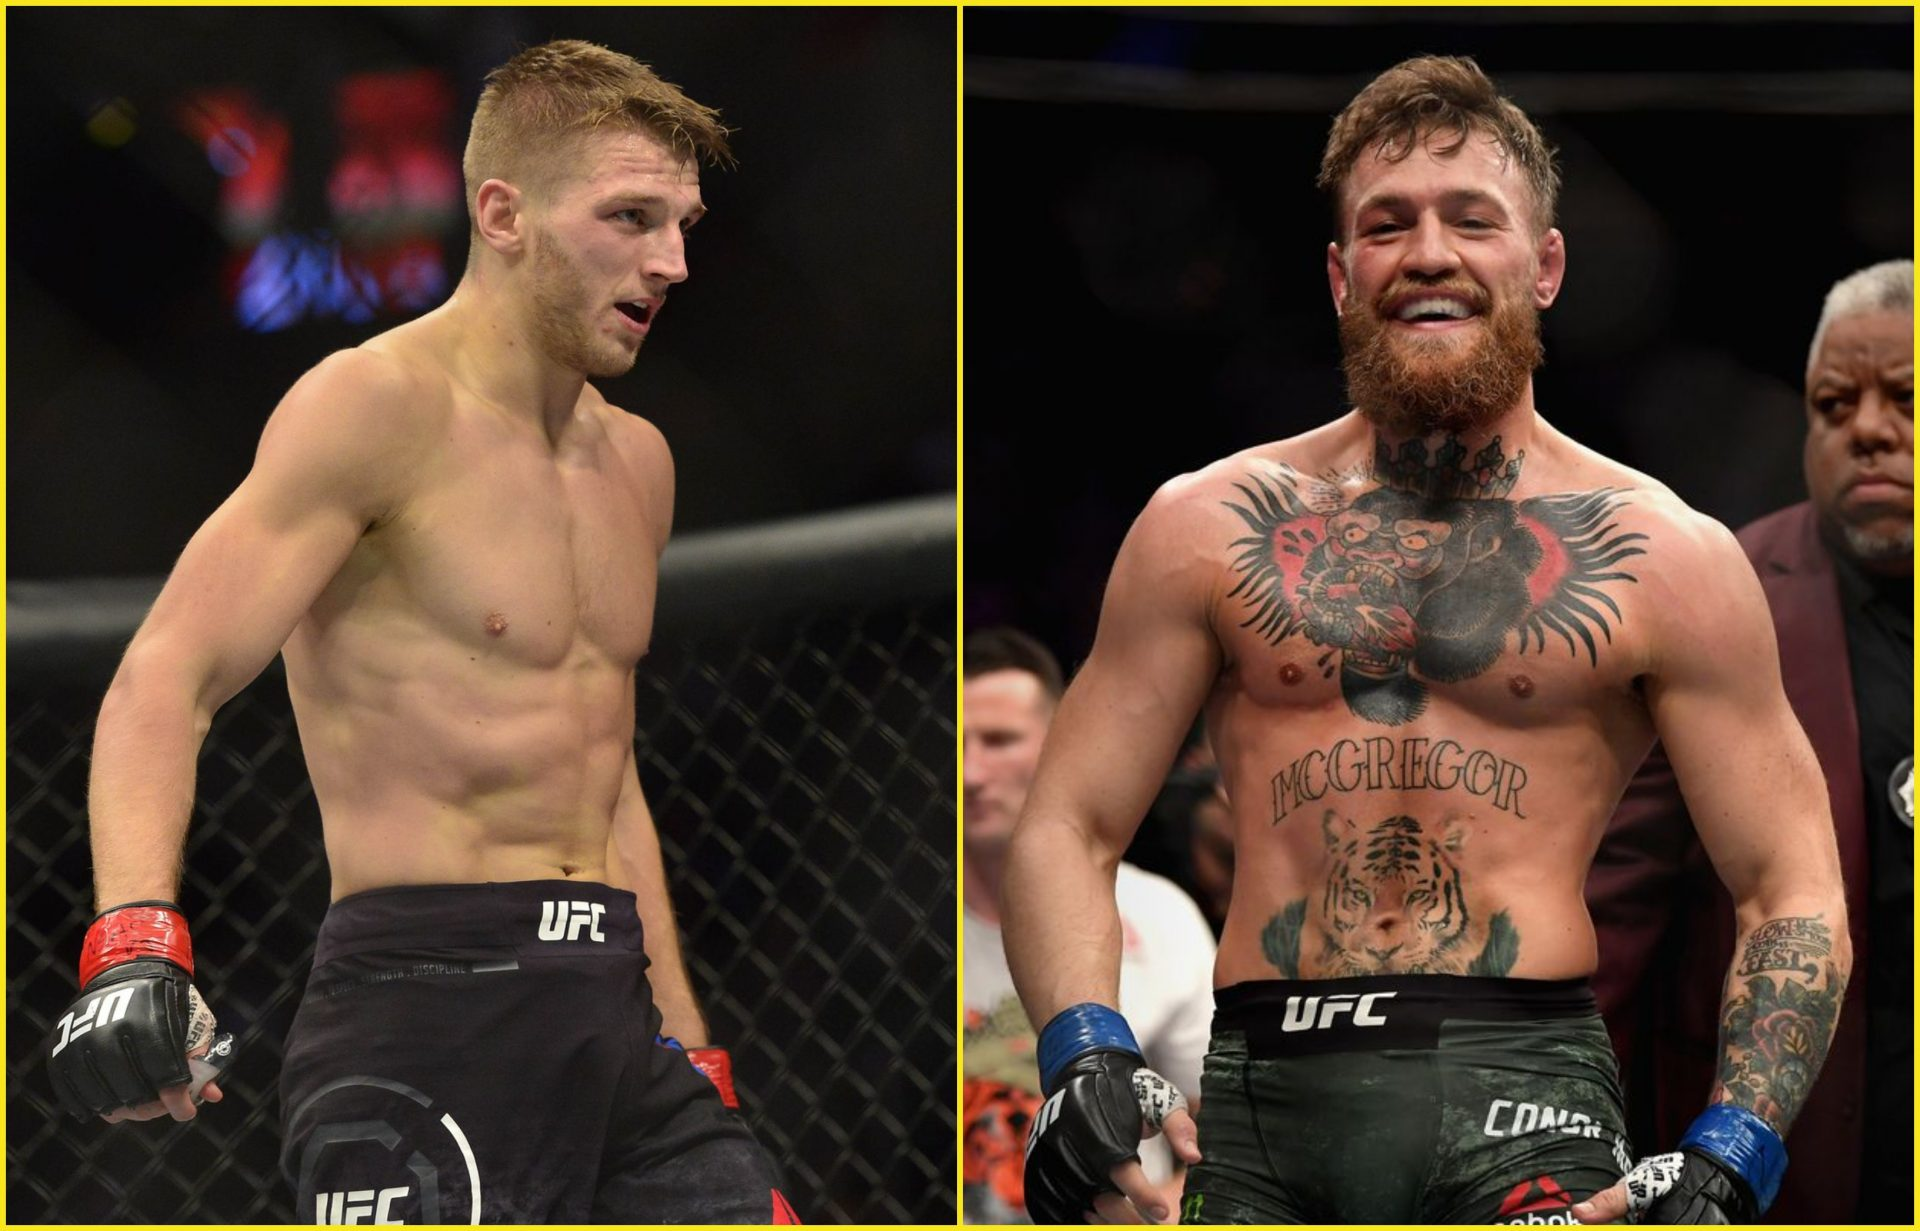 Dan Hooker agreed to fight Michael Chandler for a possible fight against Conor McGregor - Dan Hooker